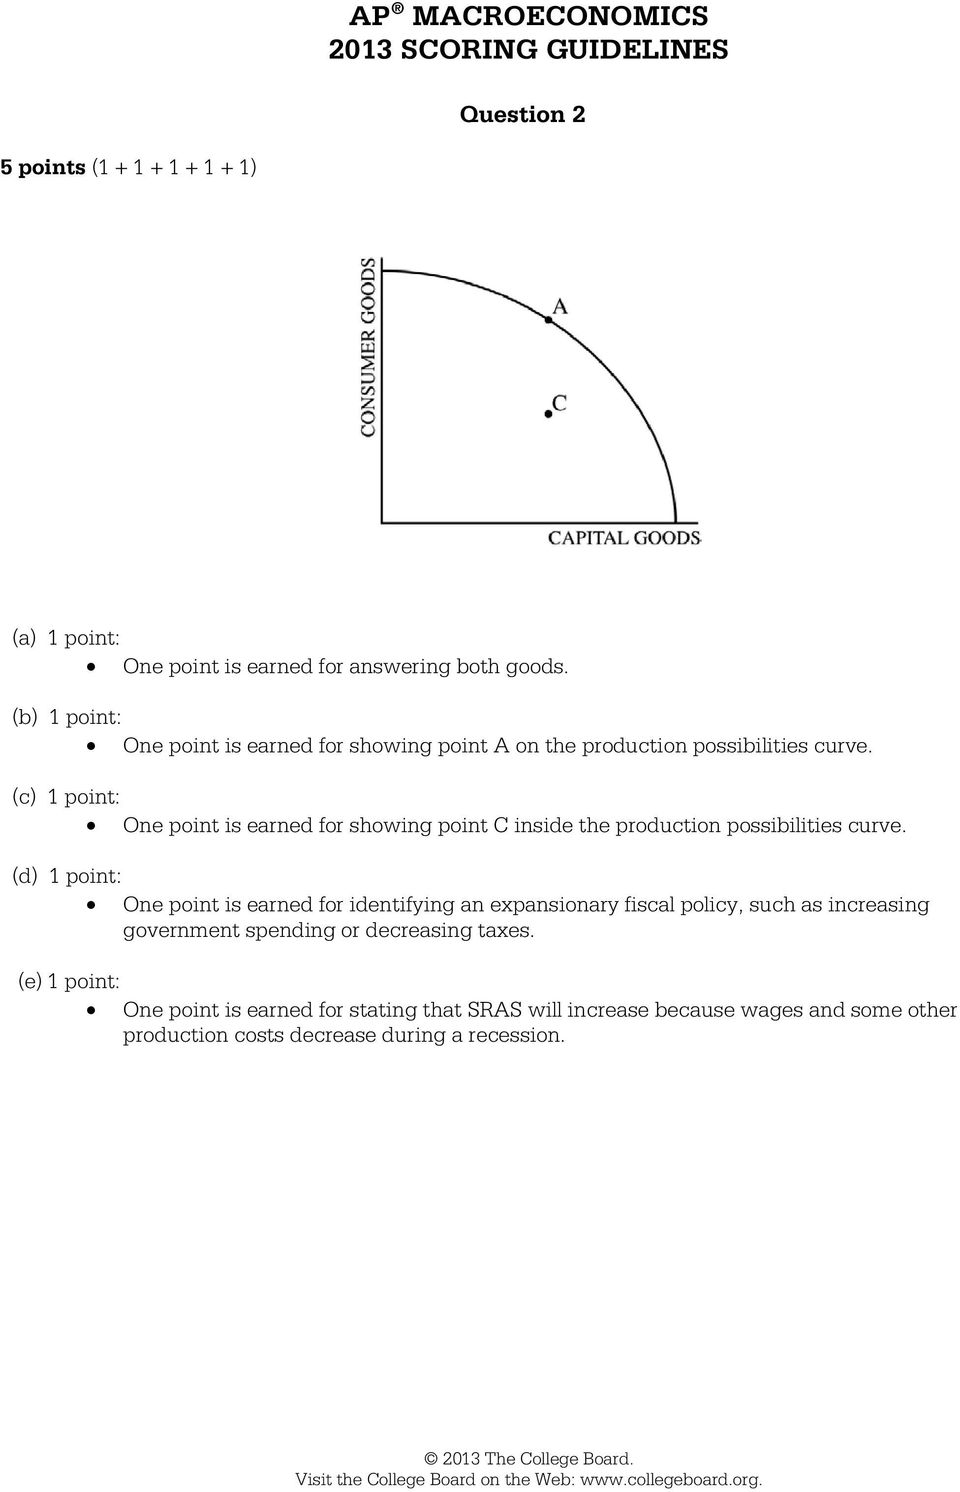 (c) 1 point: One point is earned for showing point C inside the production possibilities curve.